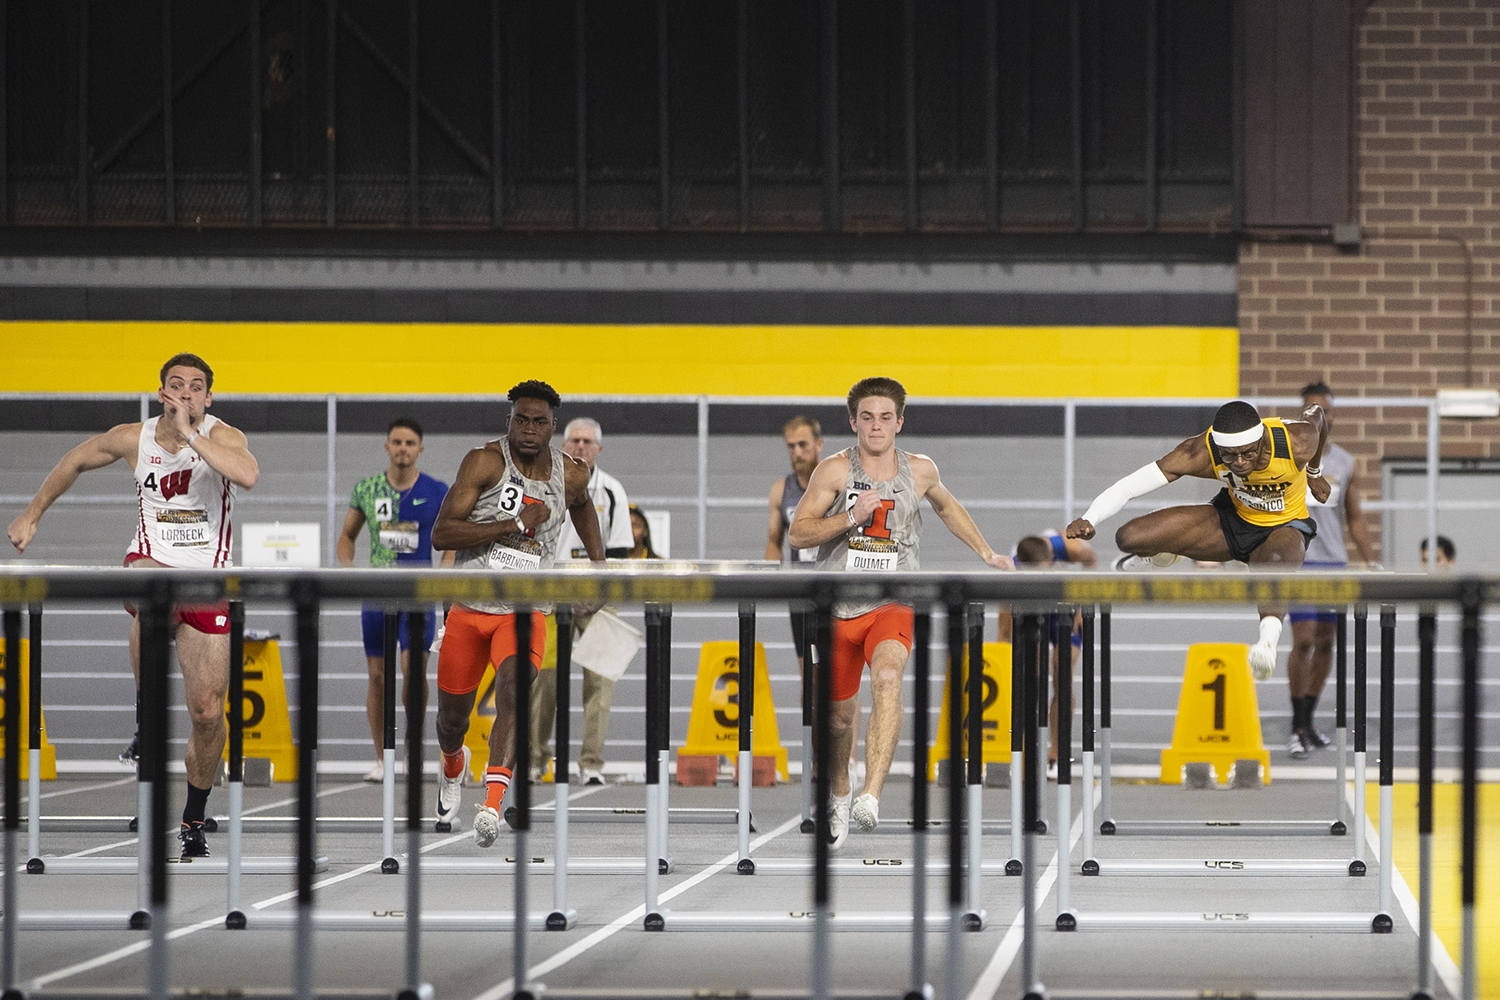 Iowa hurdler Jaylan McConico competes in the 60m hurdle premier during the fourth annual Larry Wieczorek Invitational at the University of Iowa Recreation Building on Saturday, Jan 18, 2020.